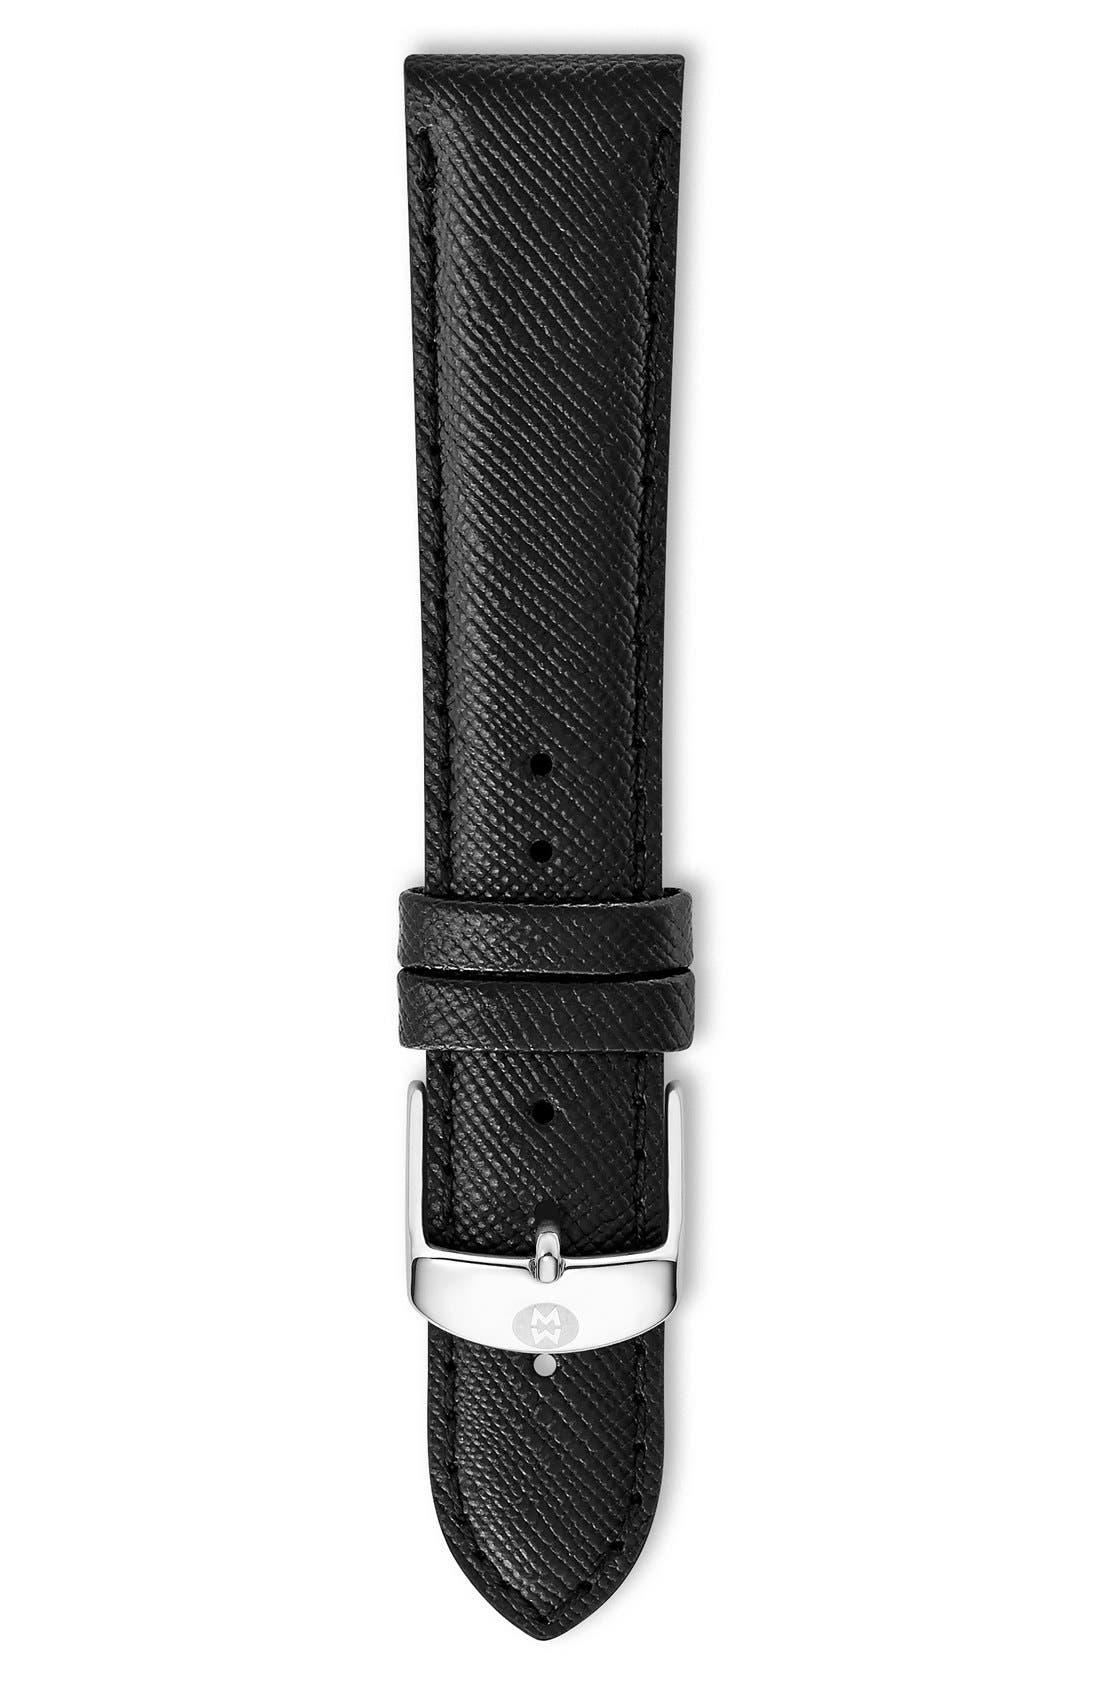 MICHELE 16mm Saffiano Leather Watch Strap